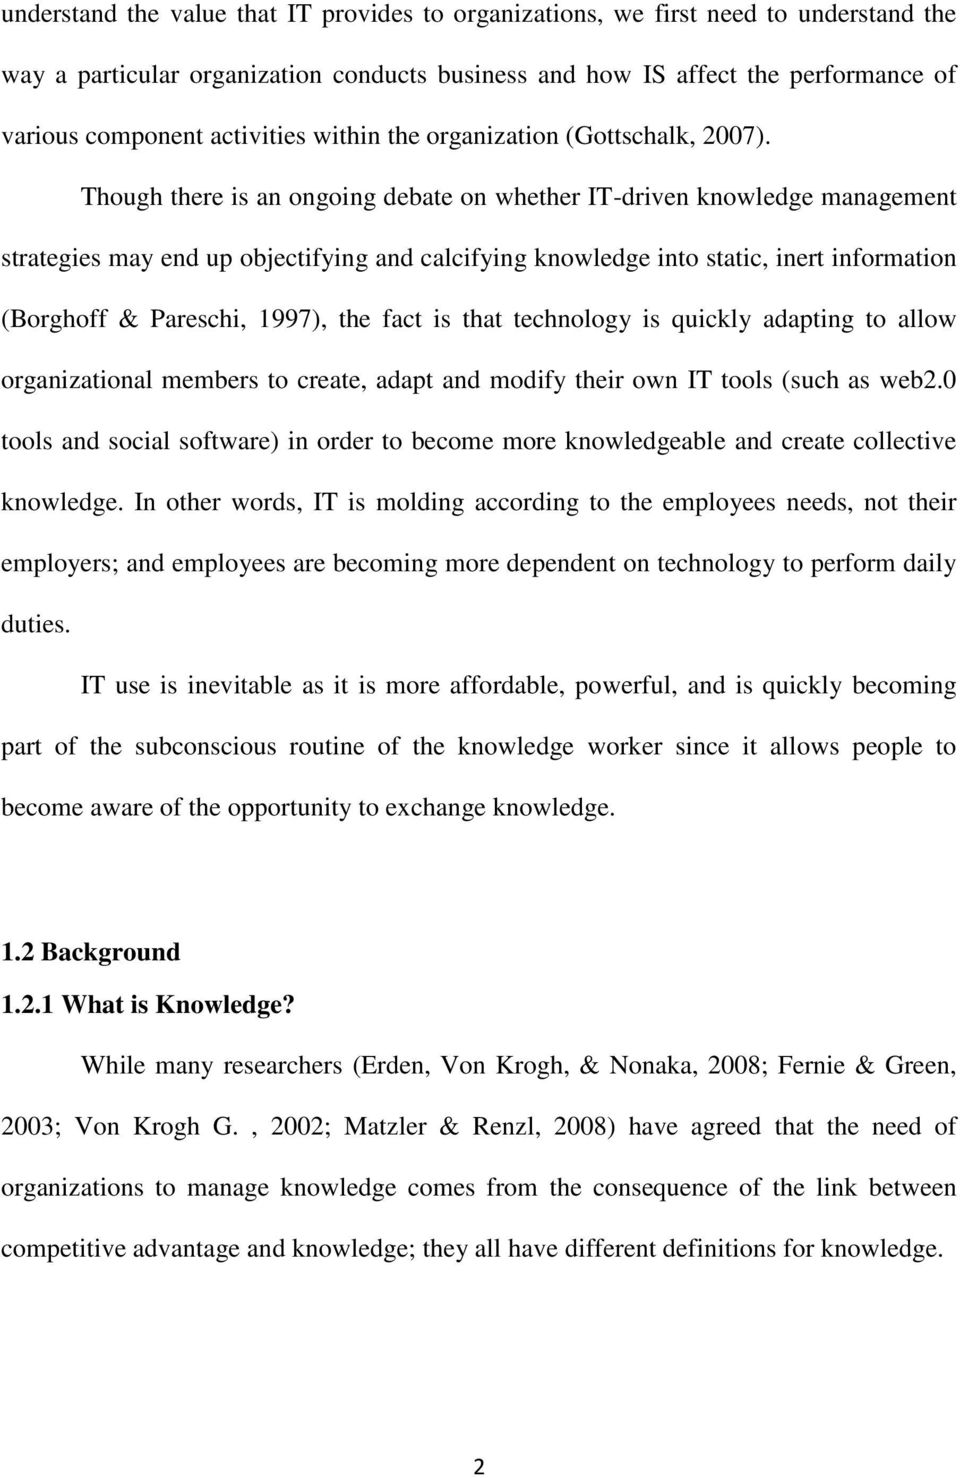 Though there is an ongoing debate on whether IT-driven knowledge management strategies may end up objectifying and calcifying knowledge into static, inert information (Borghoff & Pareschi, 1997), the